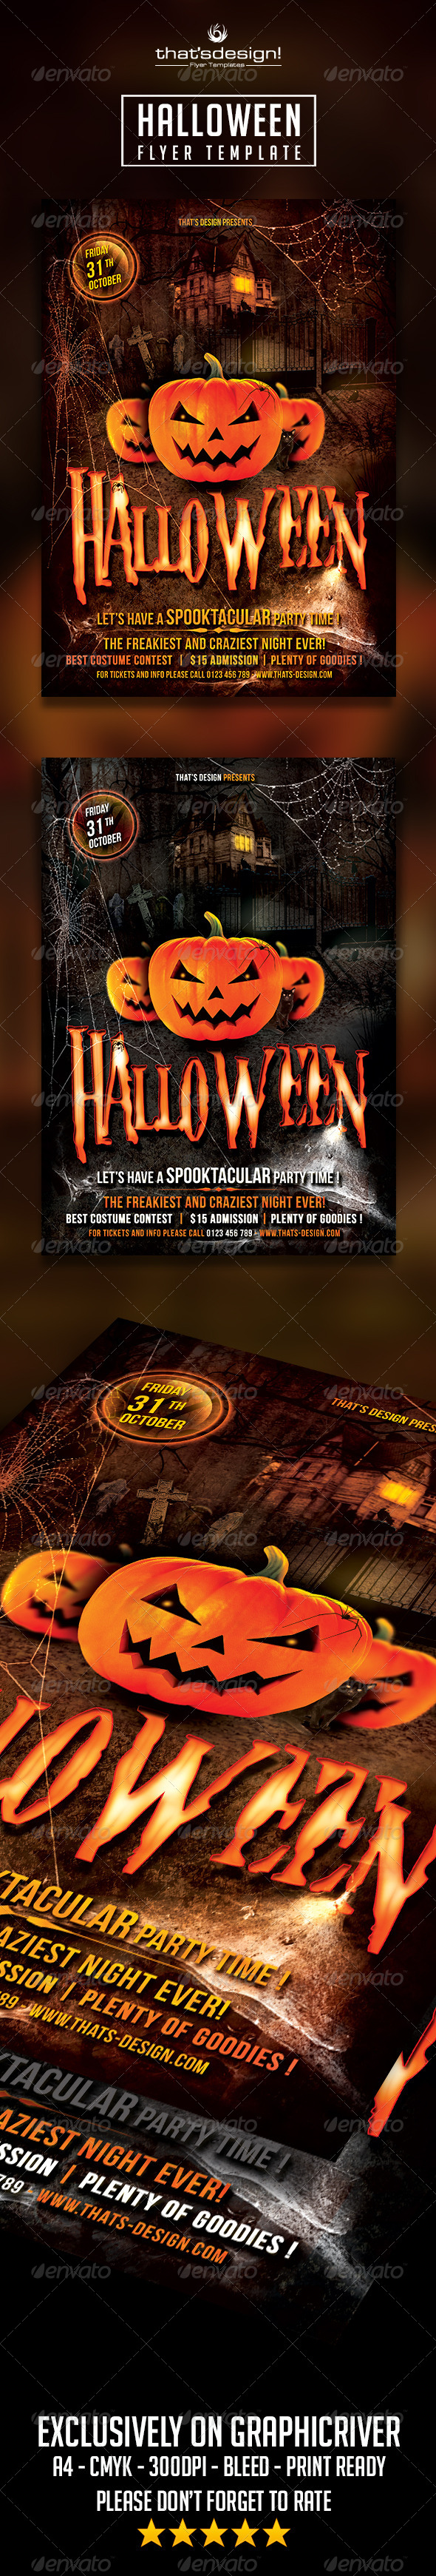 GraphicRiver Halloween Flyer Template 8514605